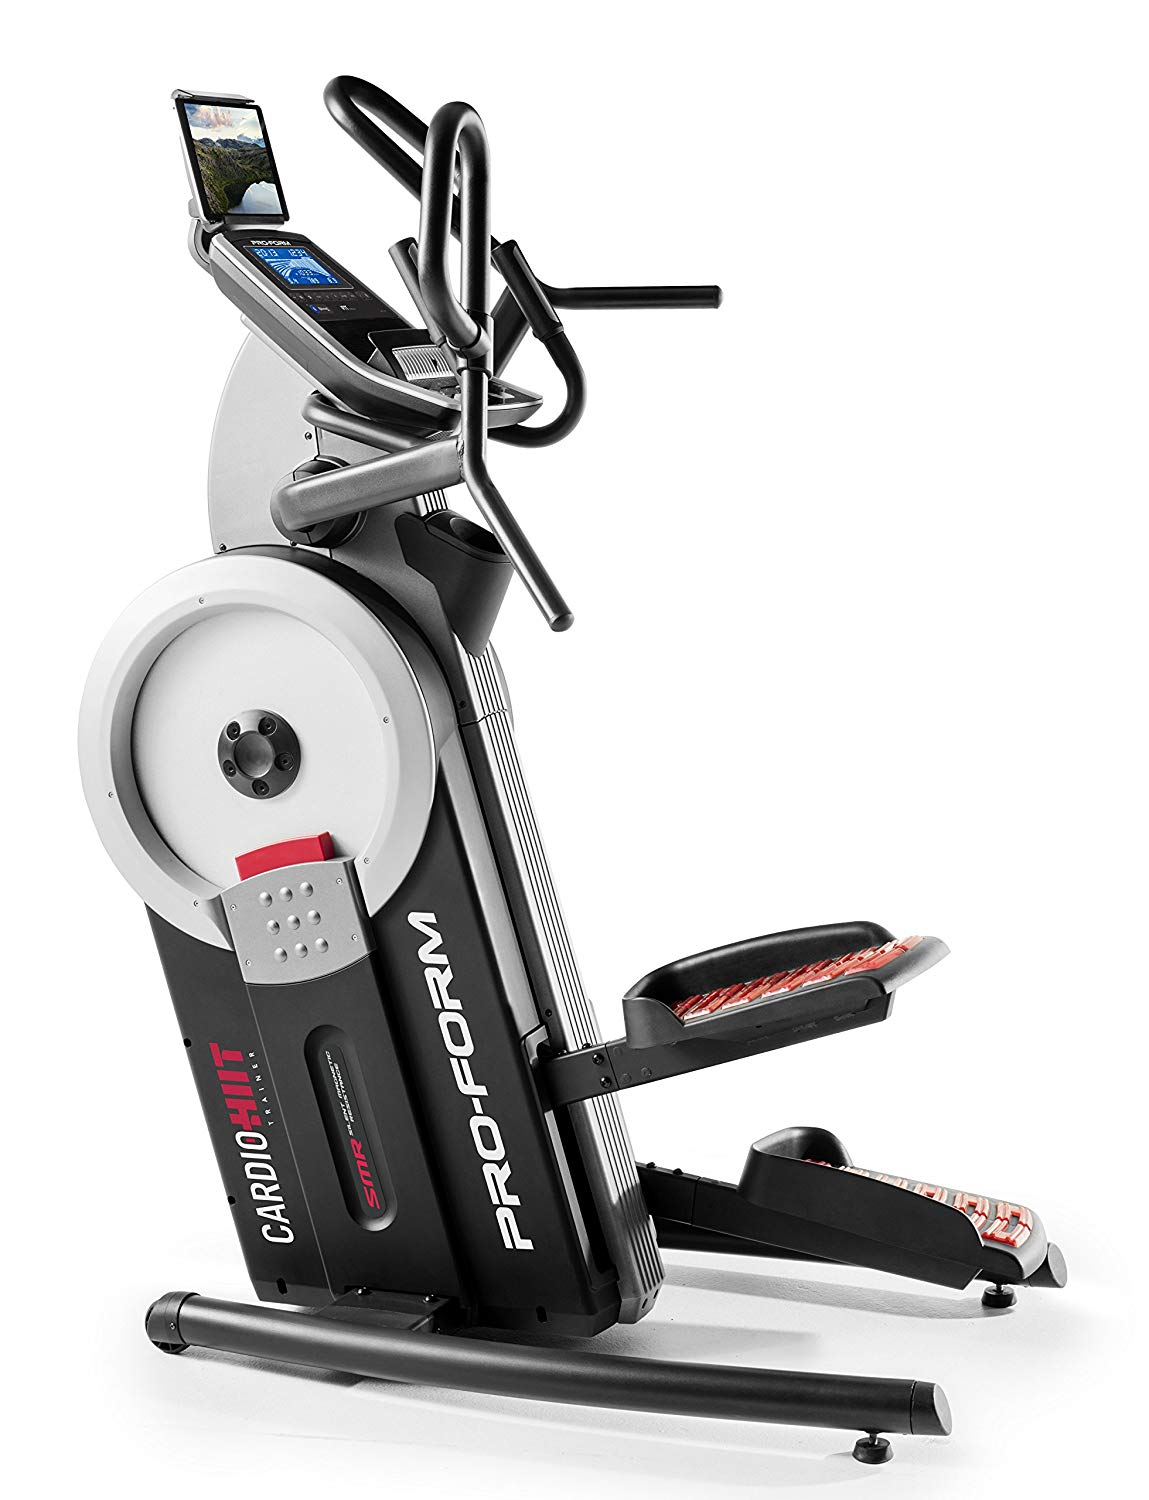 Best ellipticals 2019: give your home gym the machine it deserves